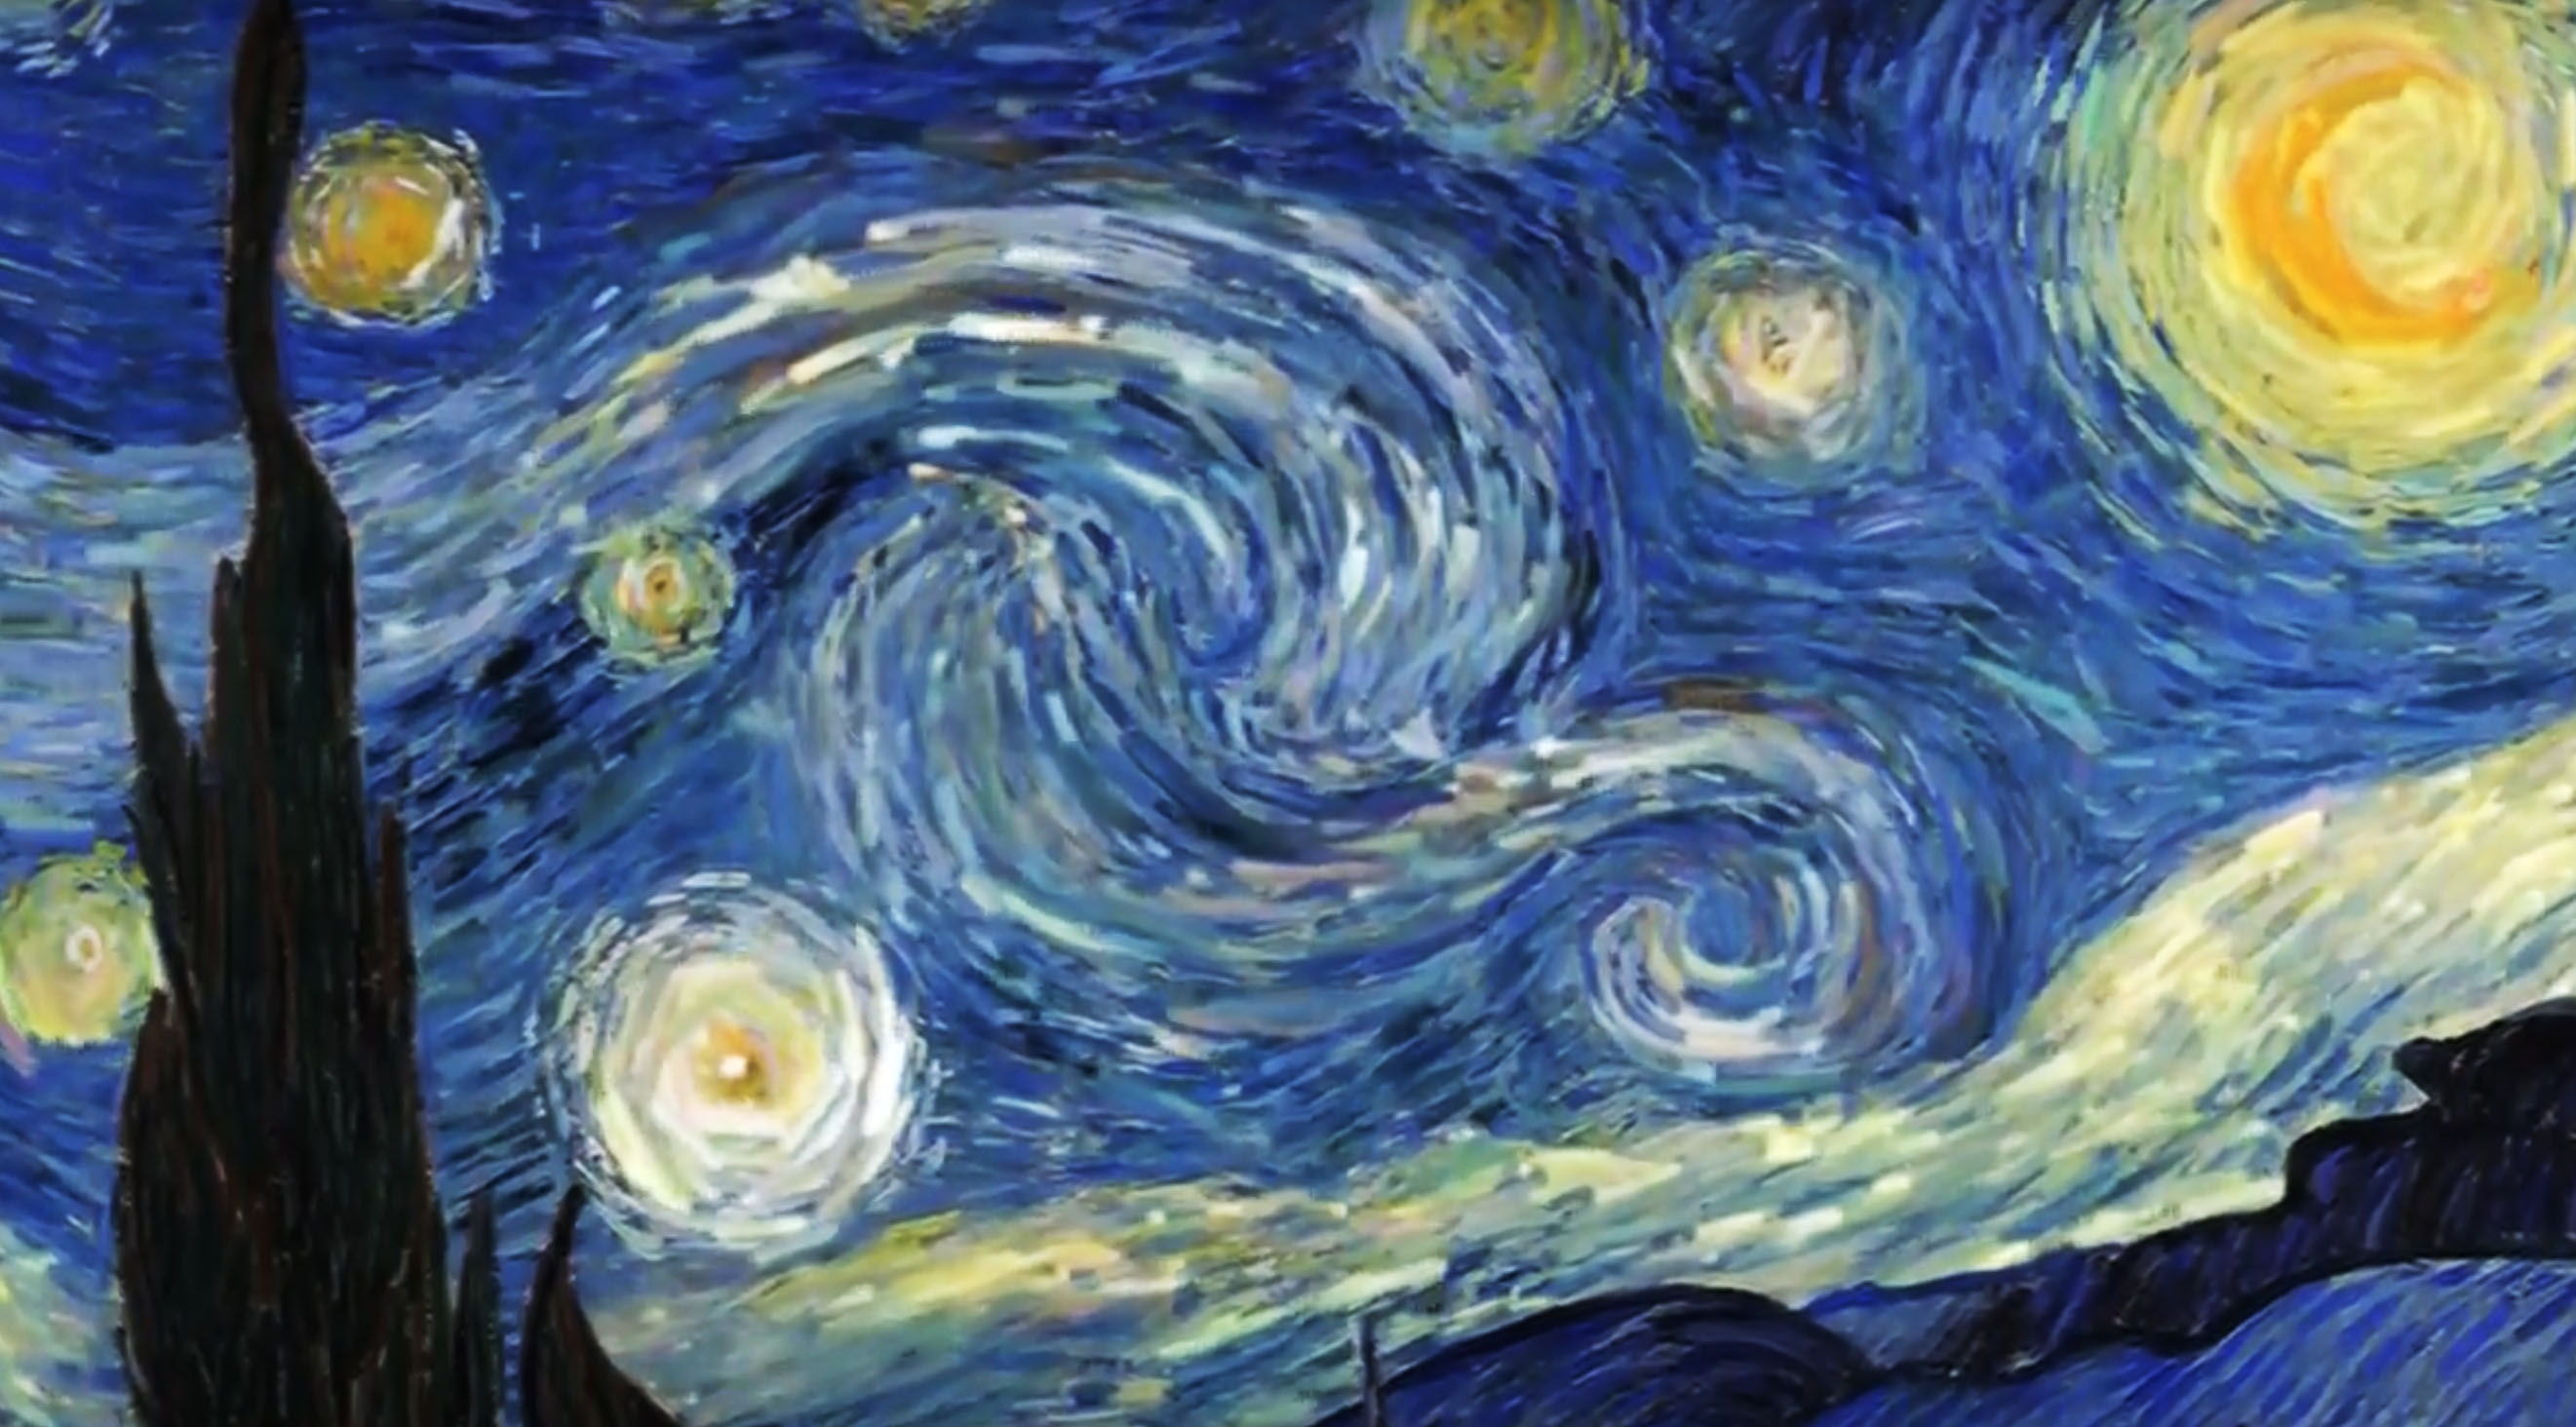 vincent (starry night by van gogh)